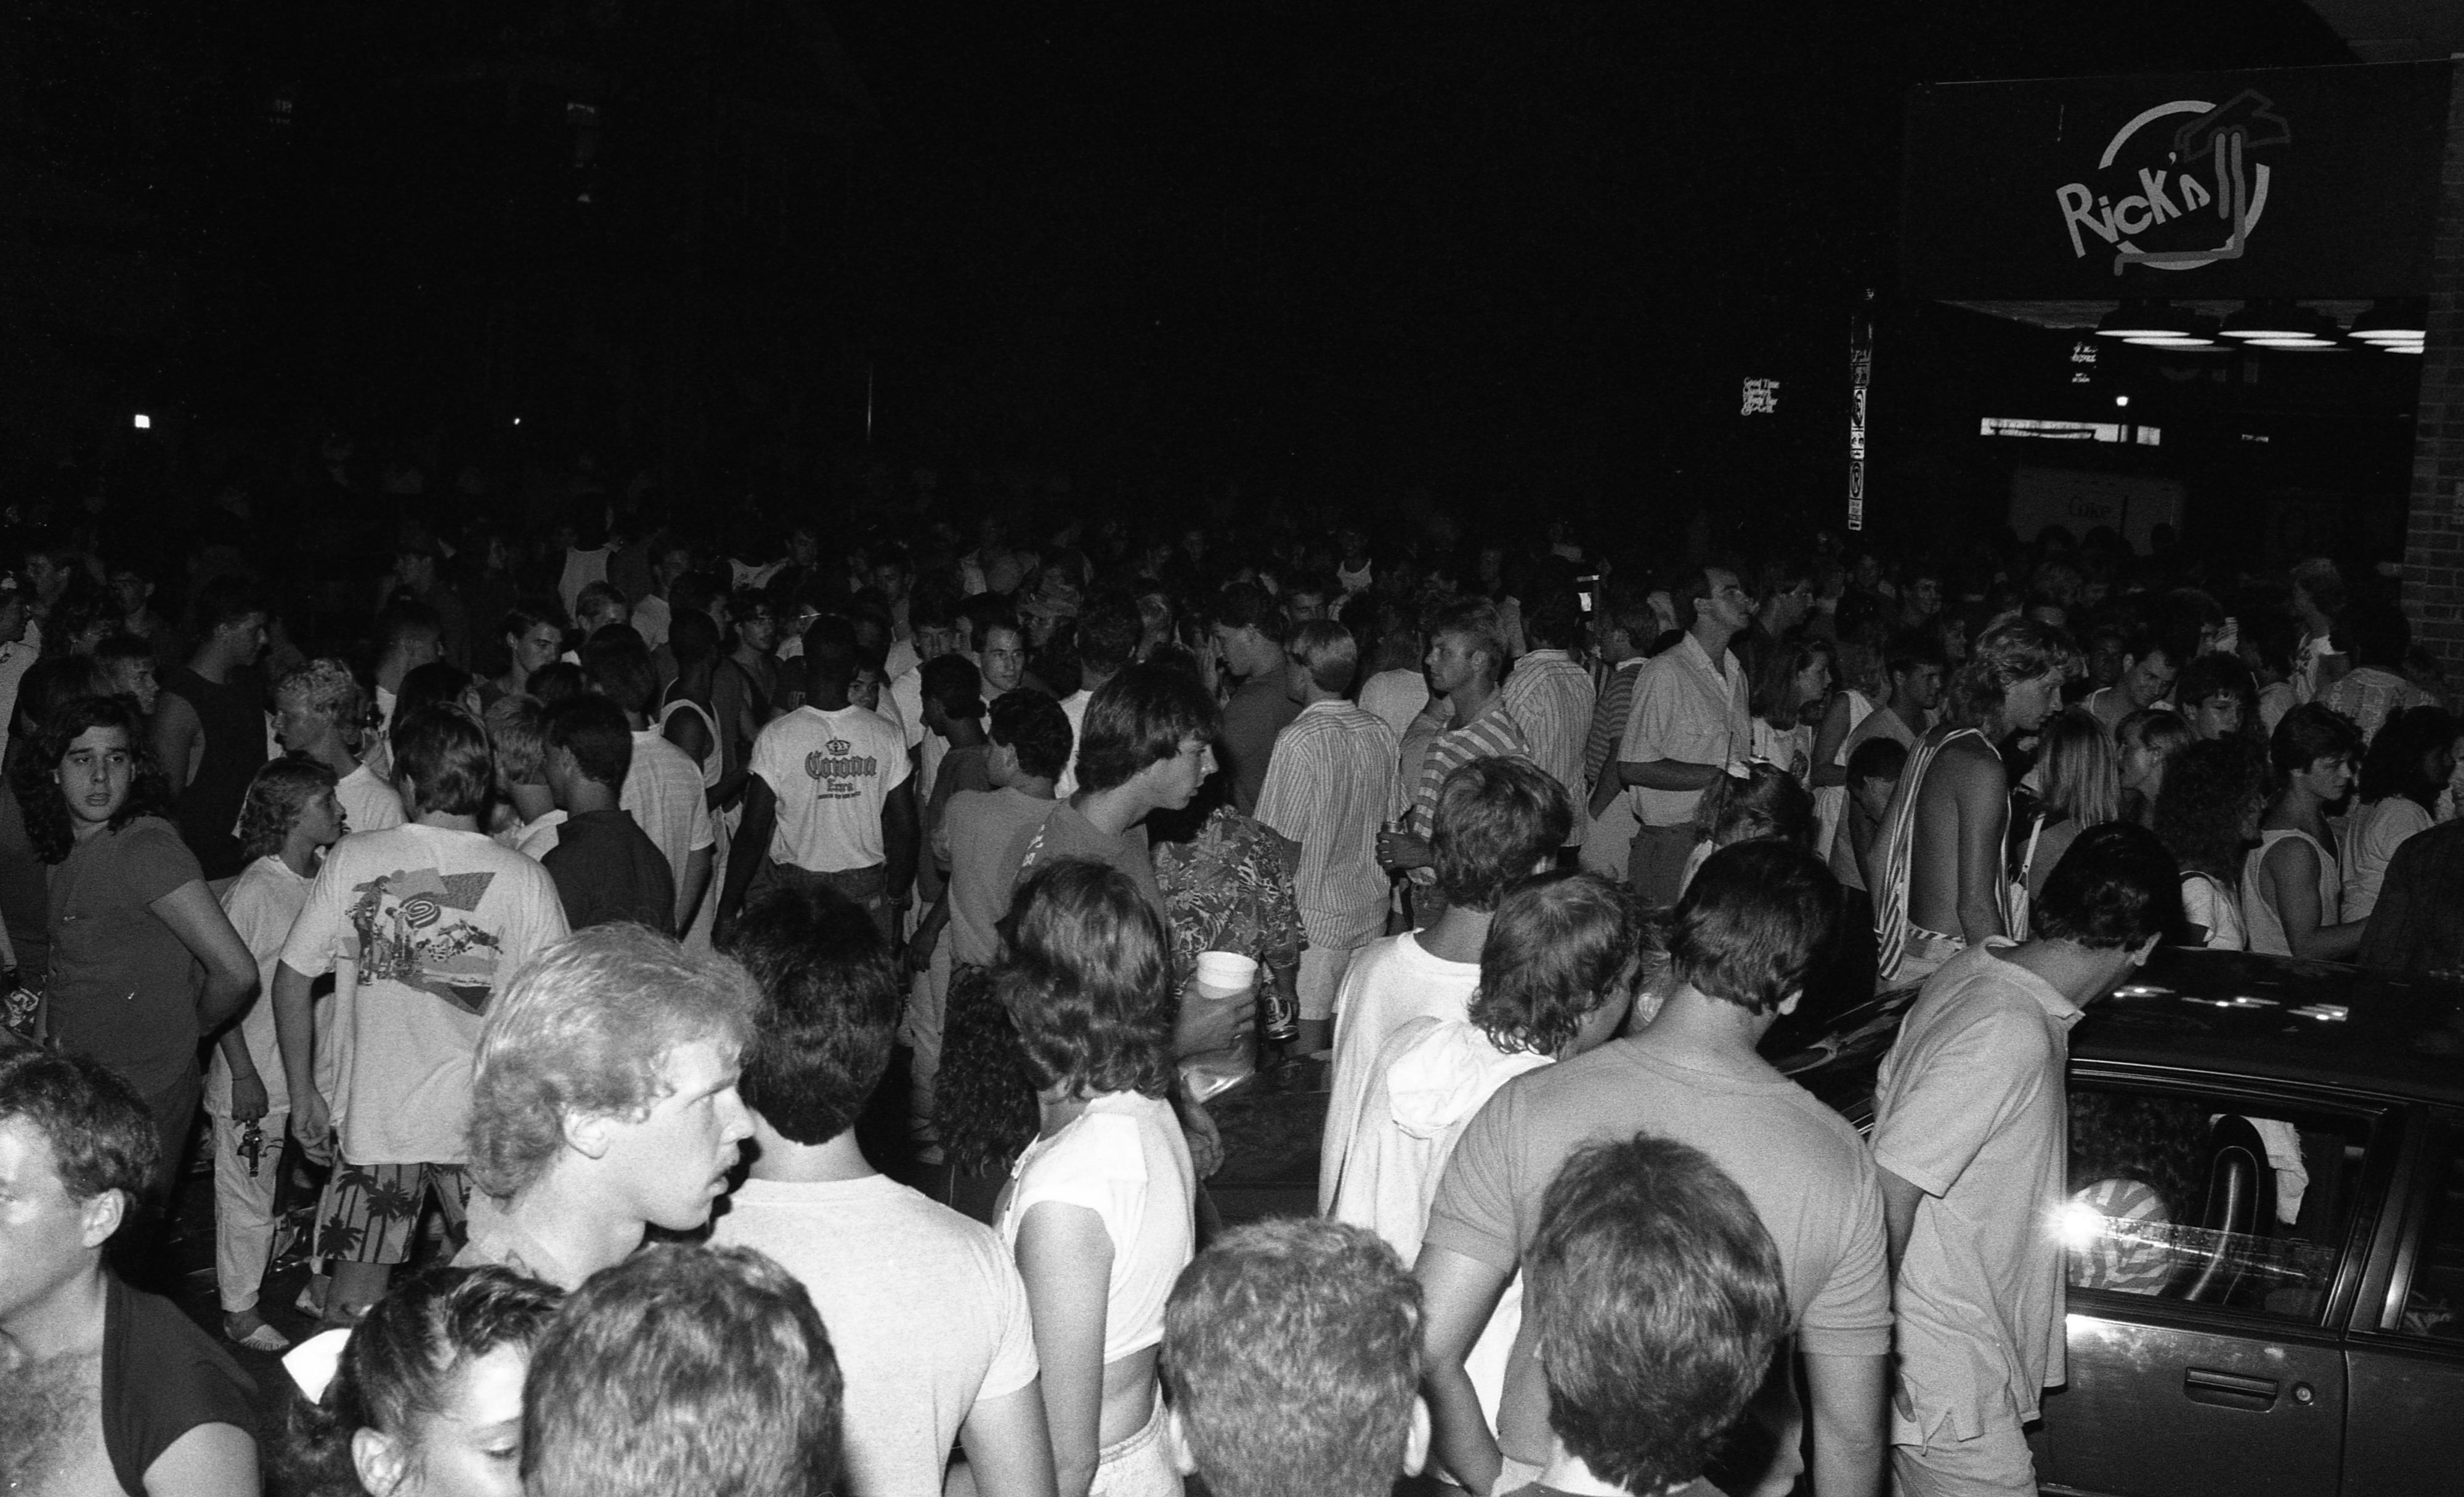 Party People Outside Rick's American Cafe on Church Street After Art Fair, July 1987 image